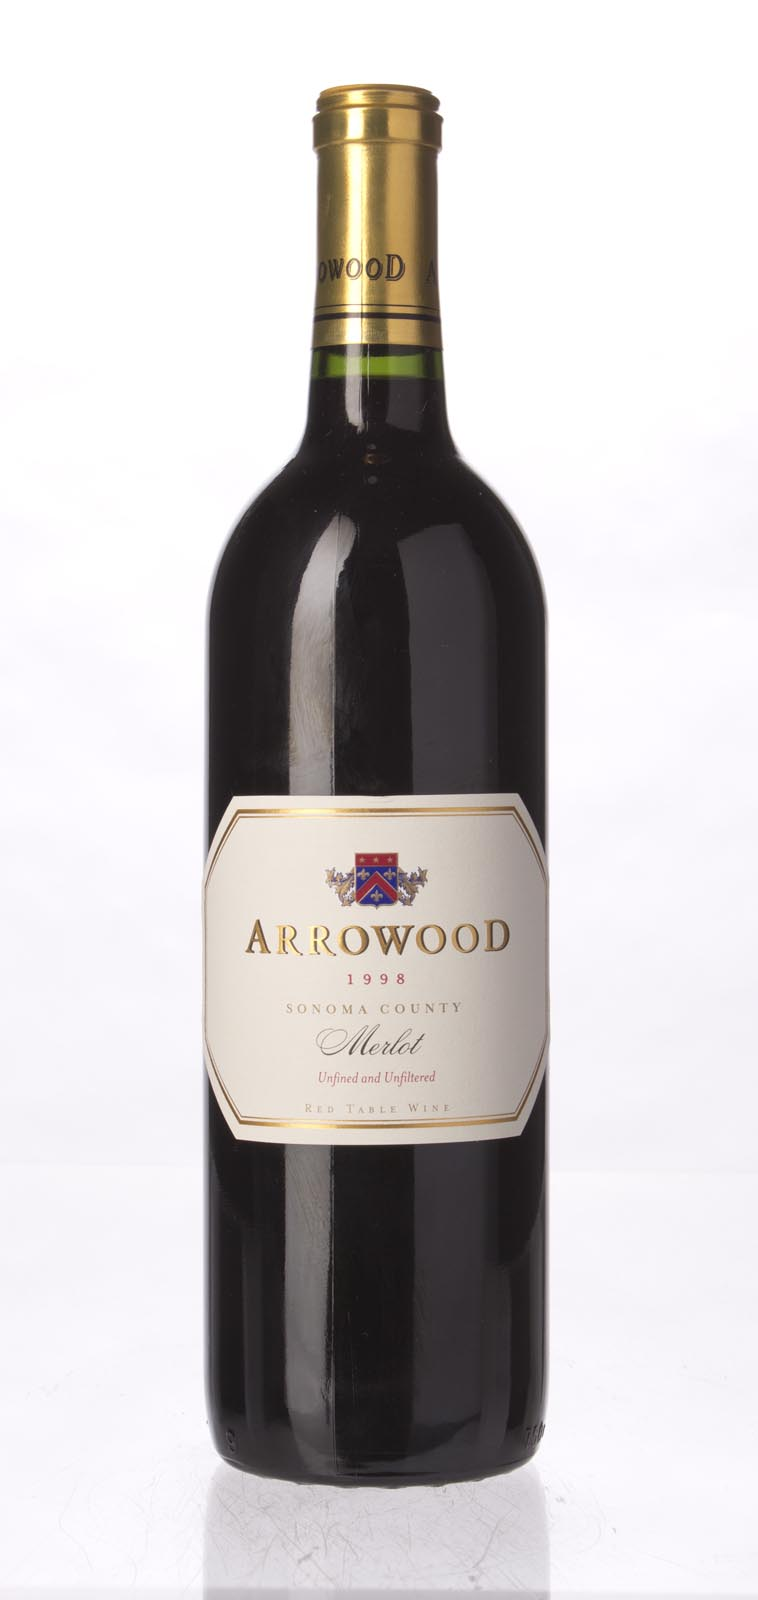 Arrowood Merlot Sonoma County 1998, 750mL () from The BPW - Merchants of rare and fine wines.